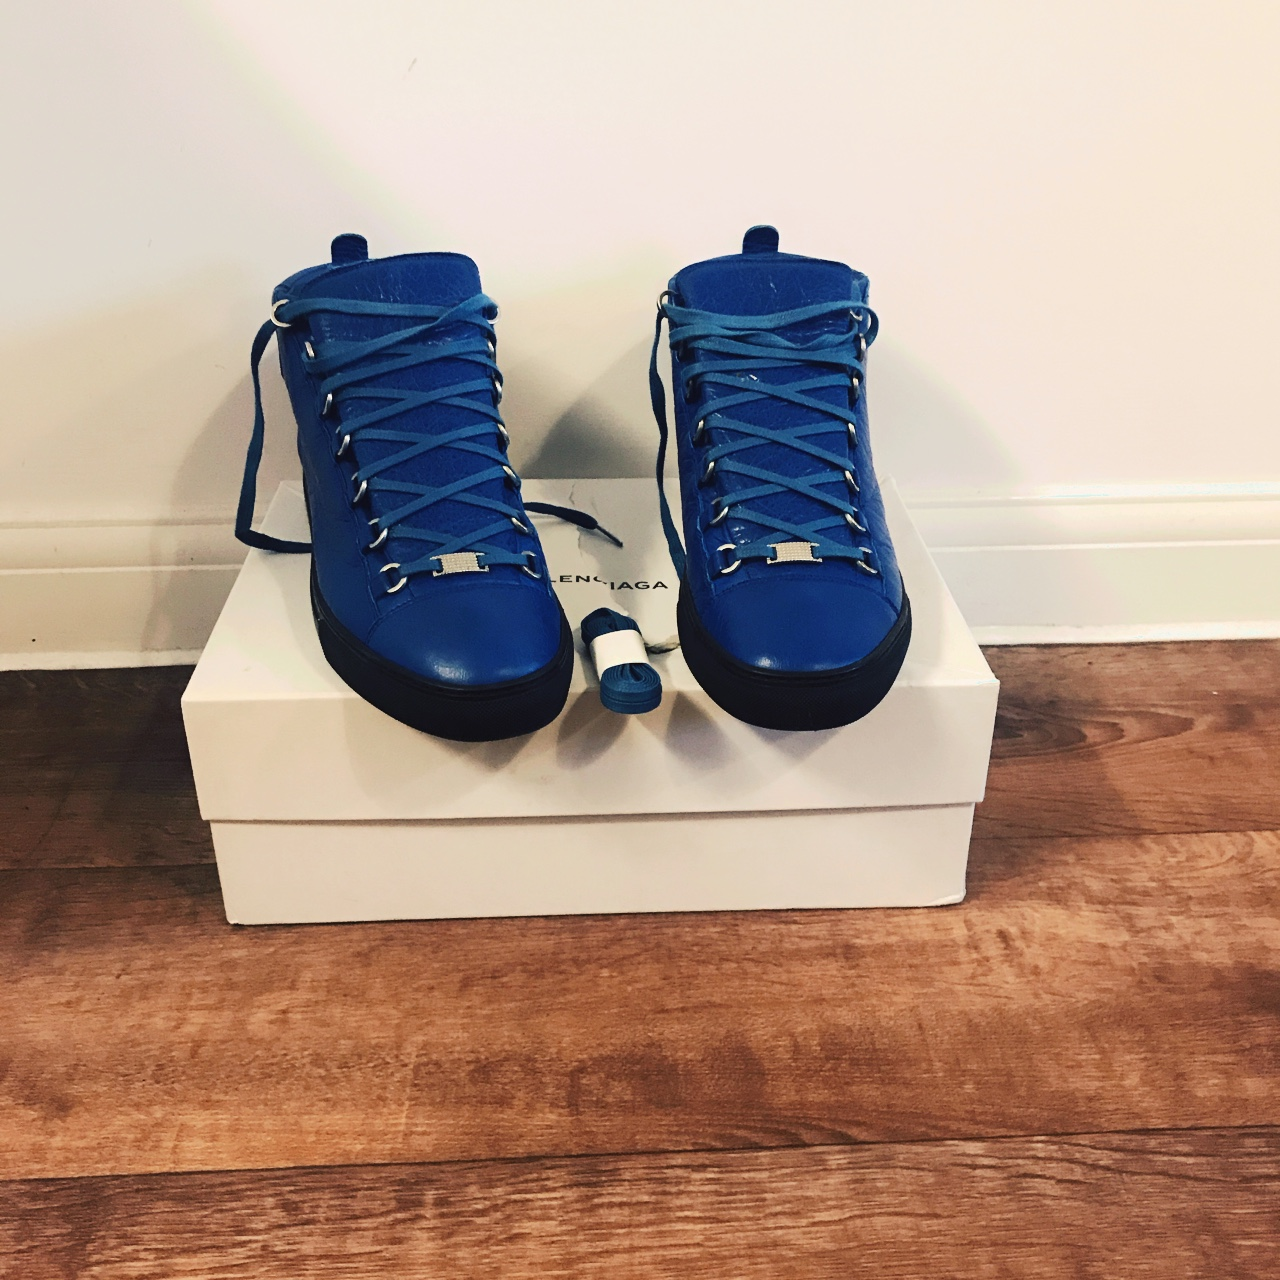 new balenciaga arena blue leather hi top sneakers nwt